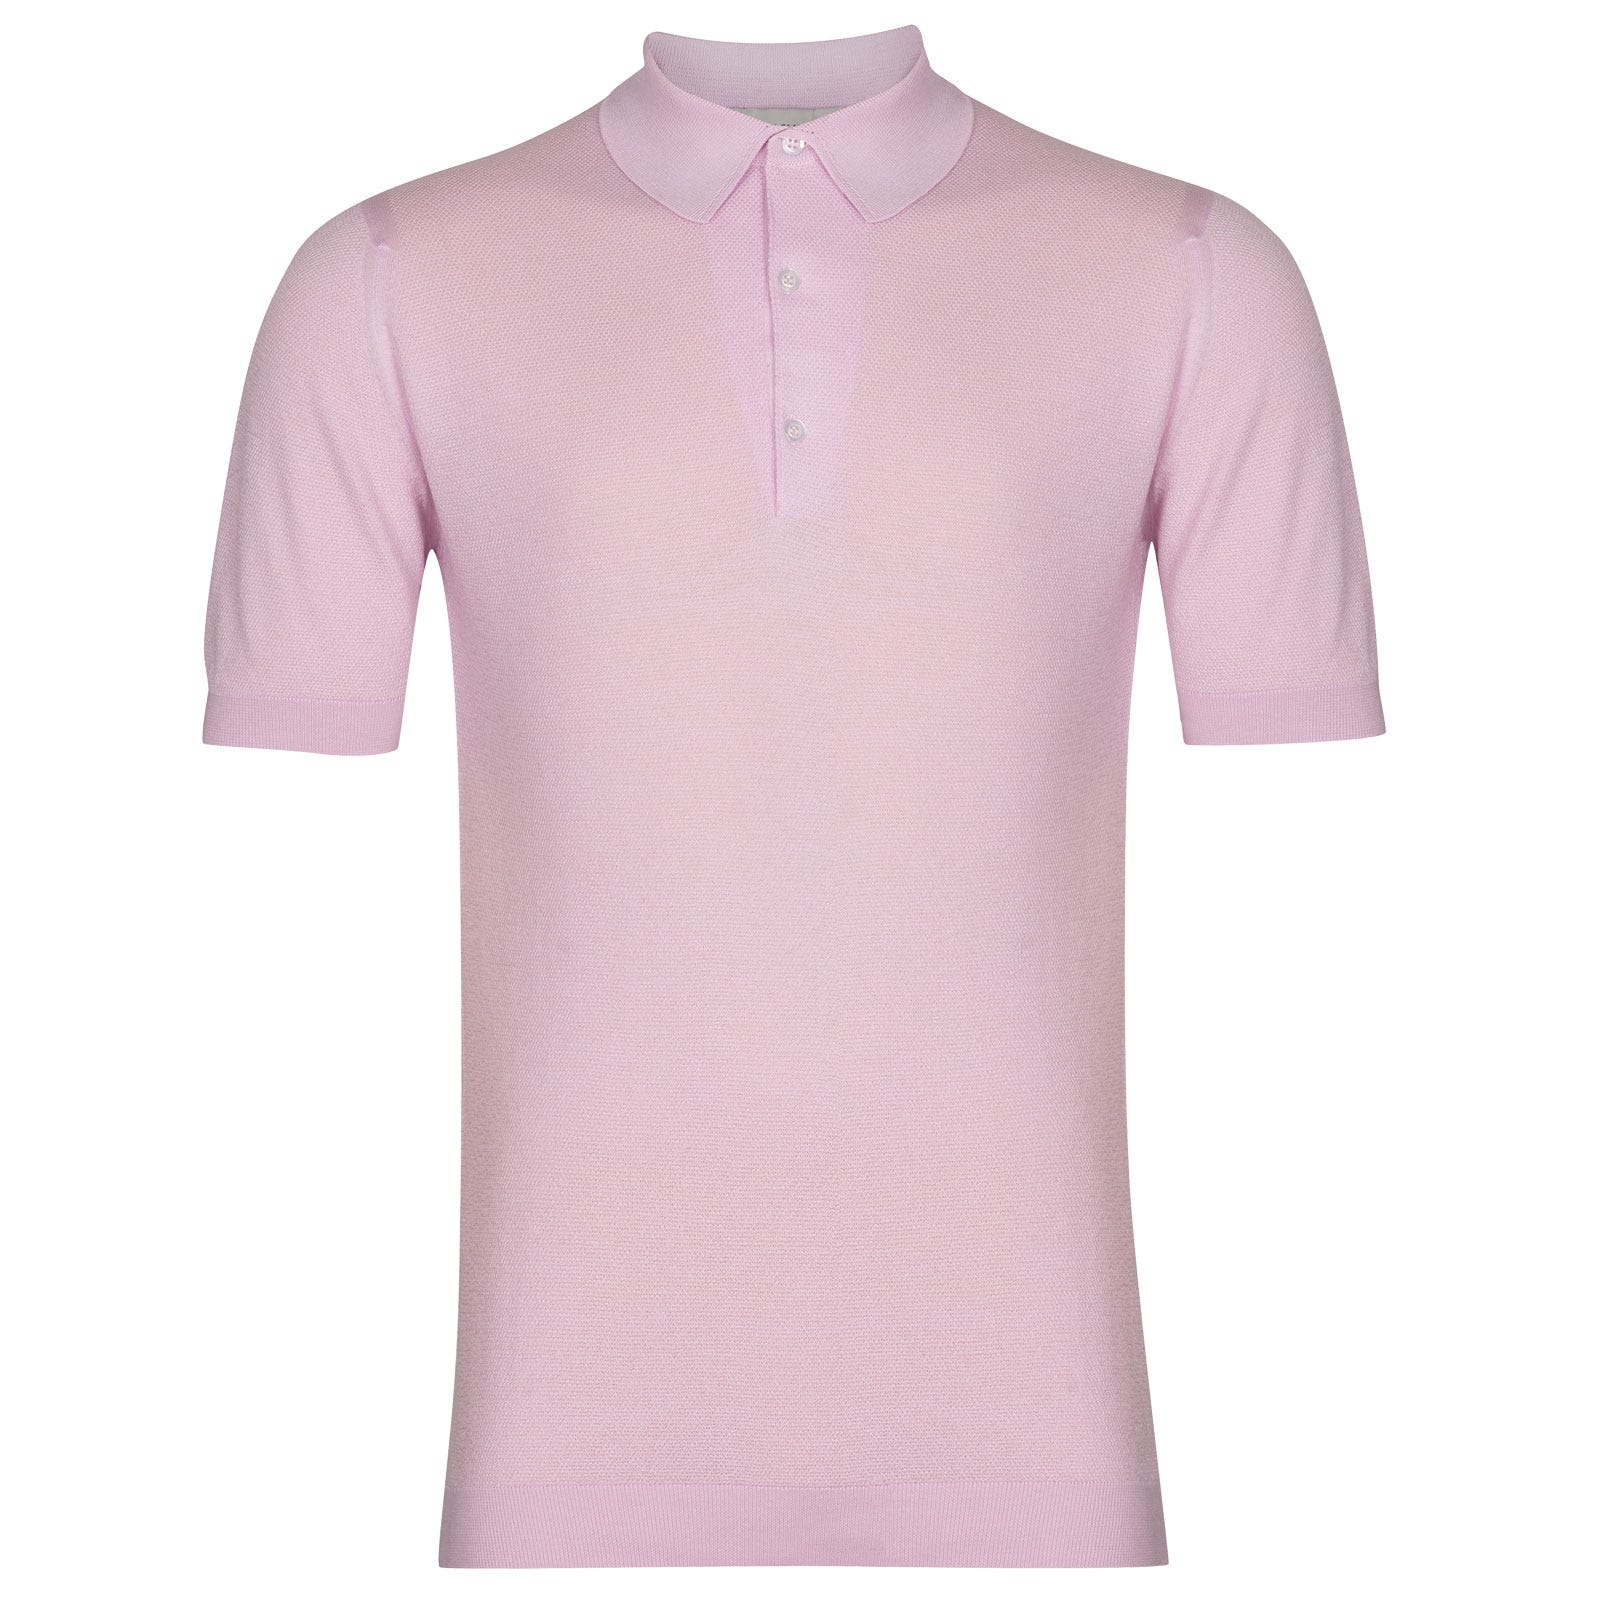 John Smedley Roth in Pink Blossom Shirt-SML